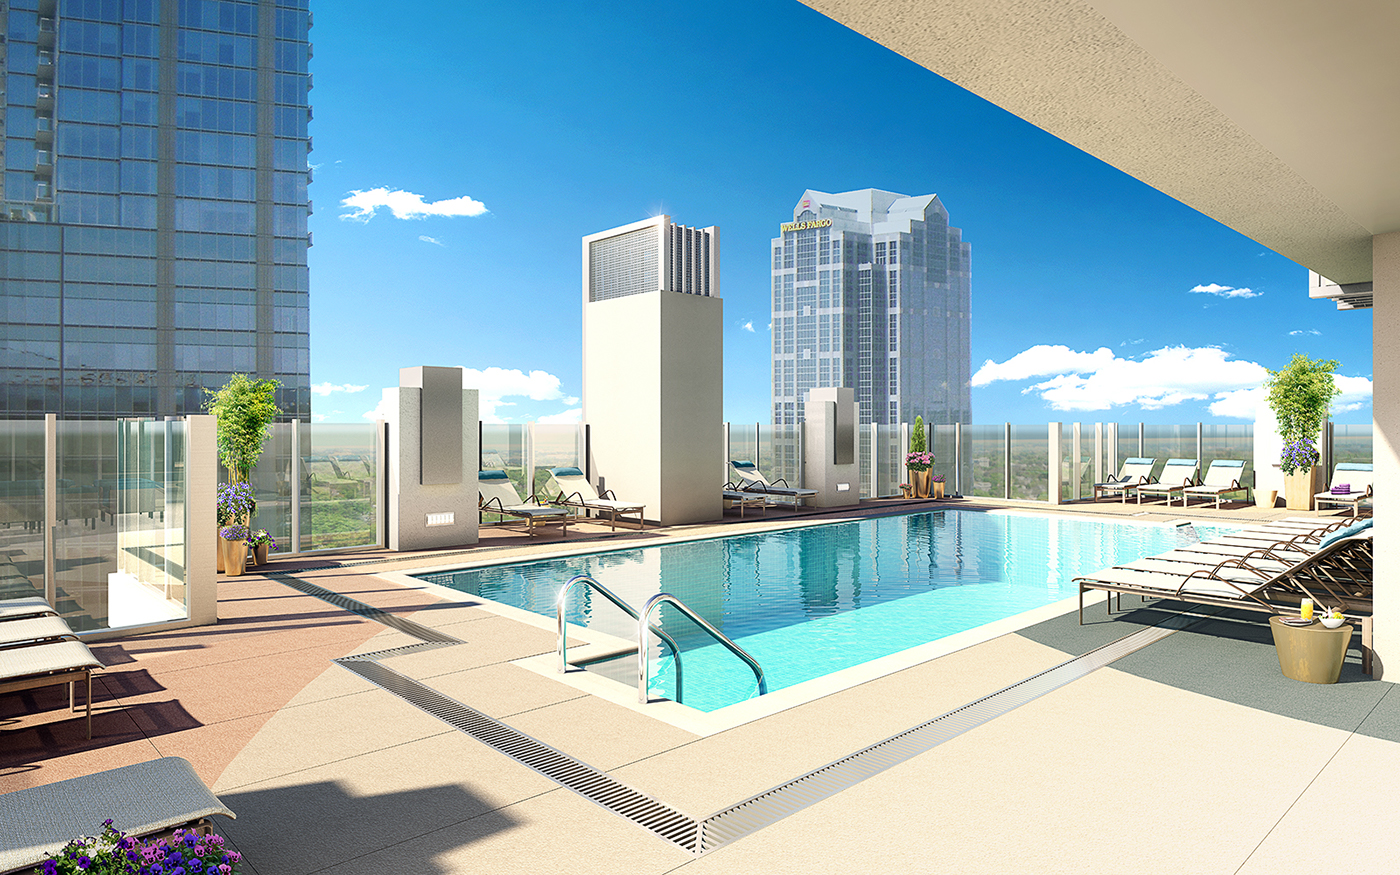 architectural visualization 3D Rendering